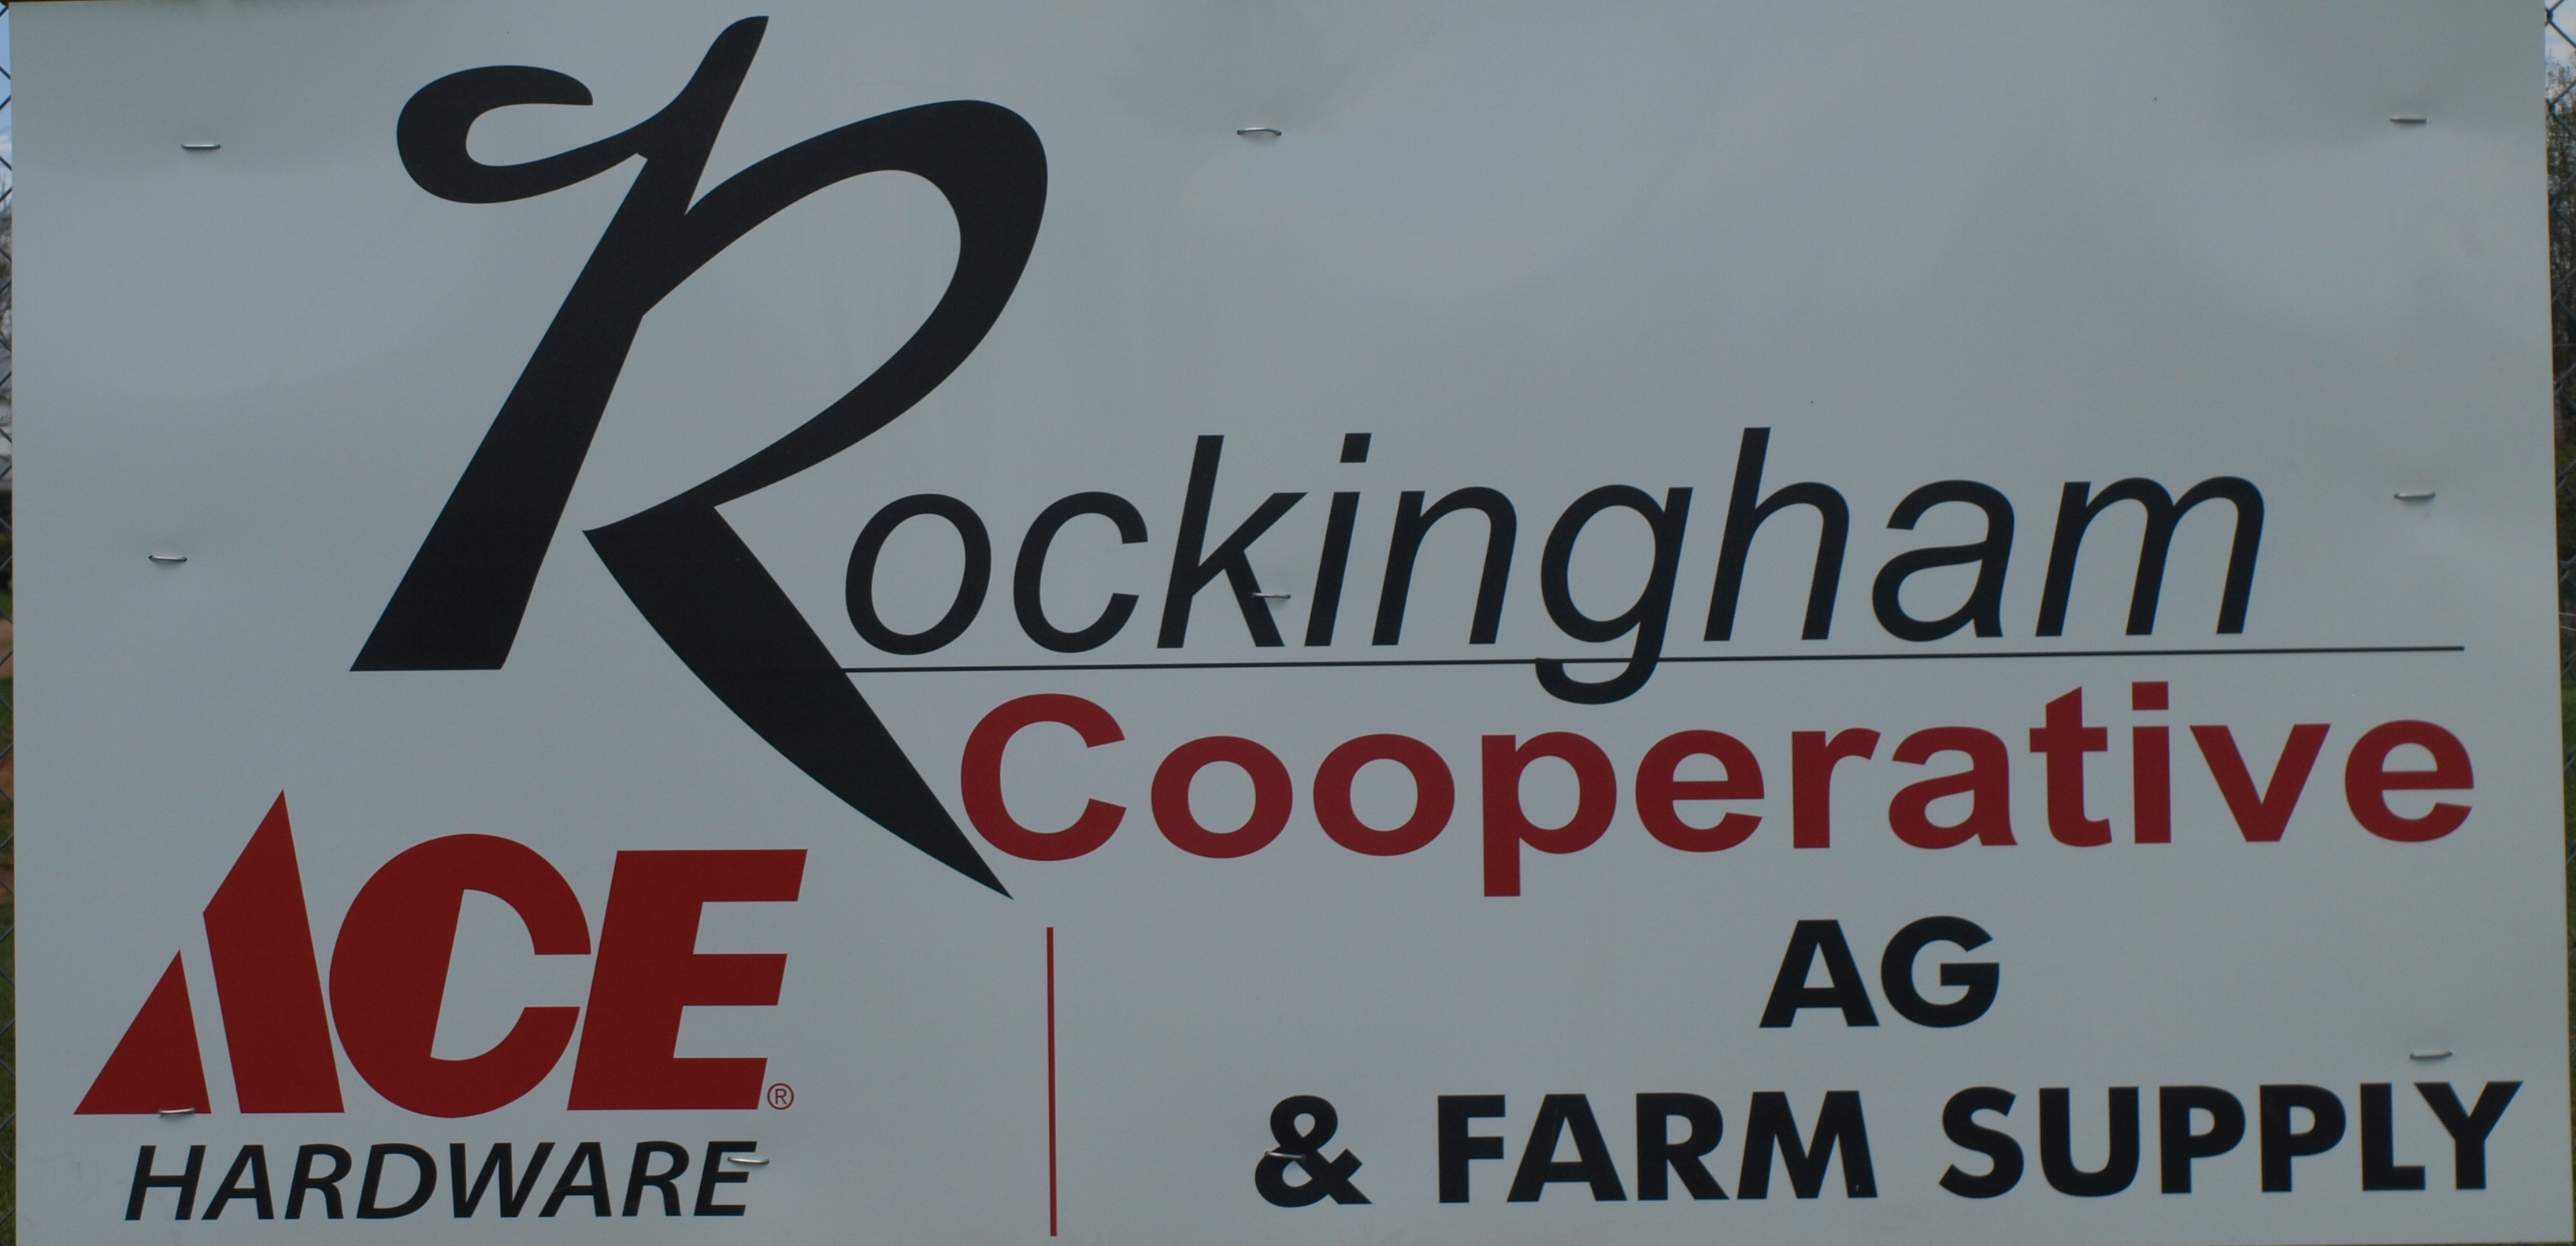 Rockingham Cooperative Ace Hardware/AG & Farm Supply